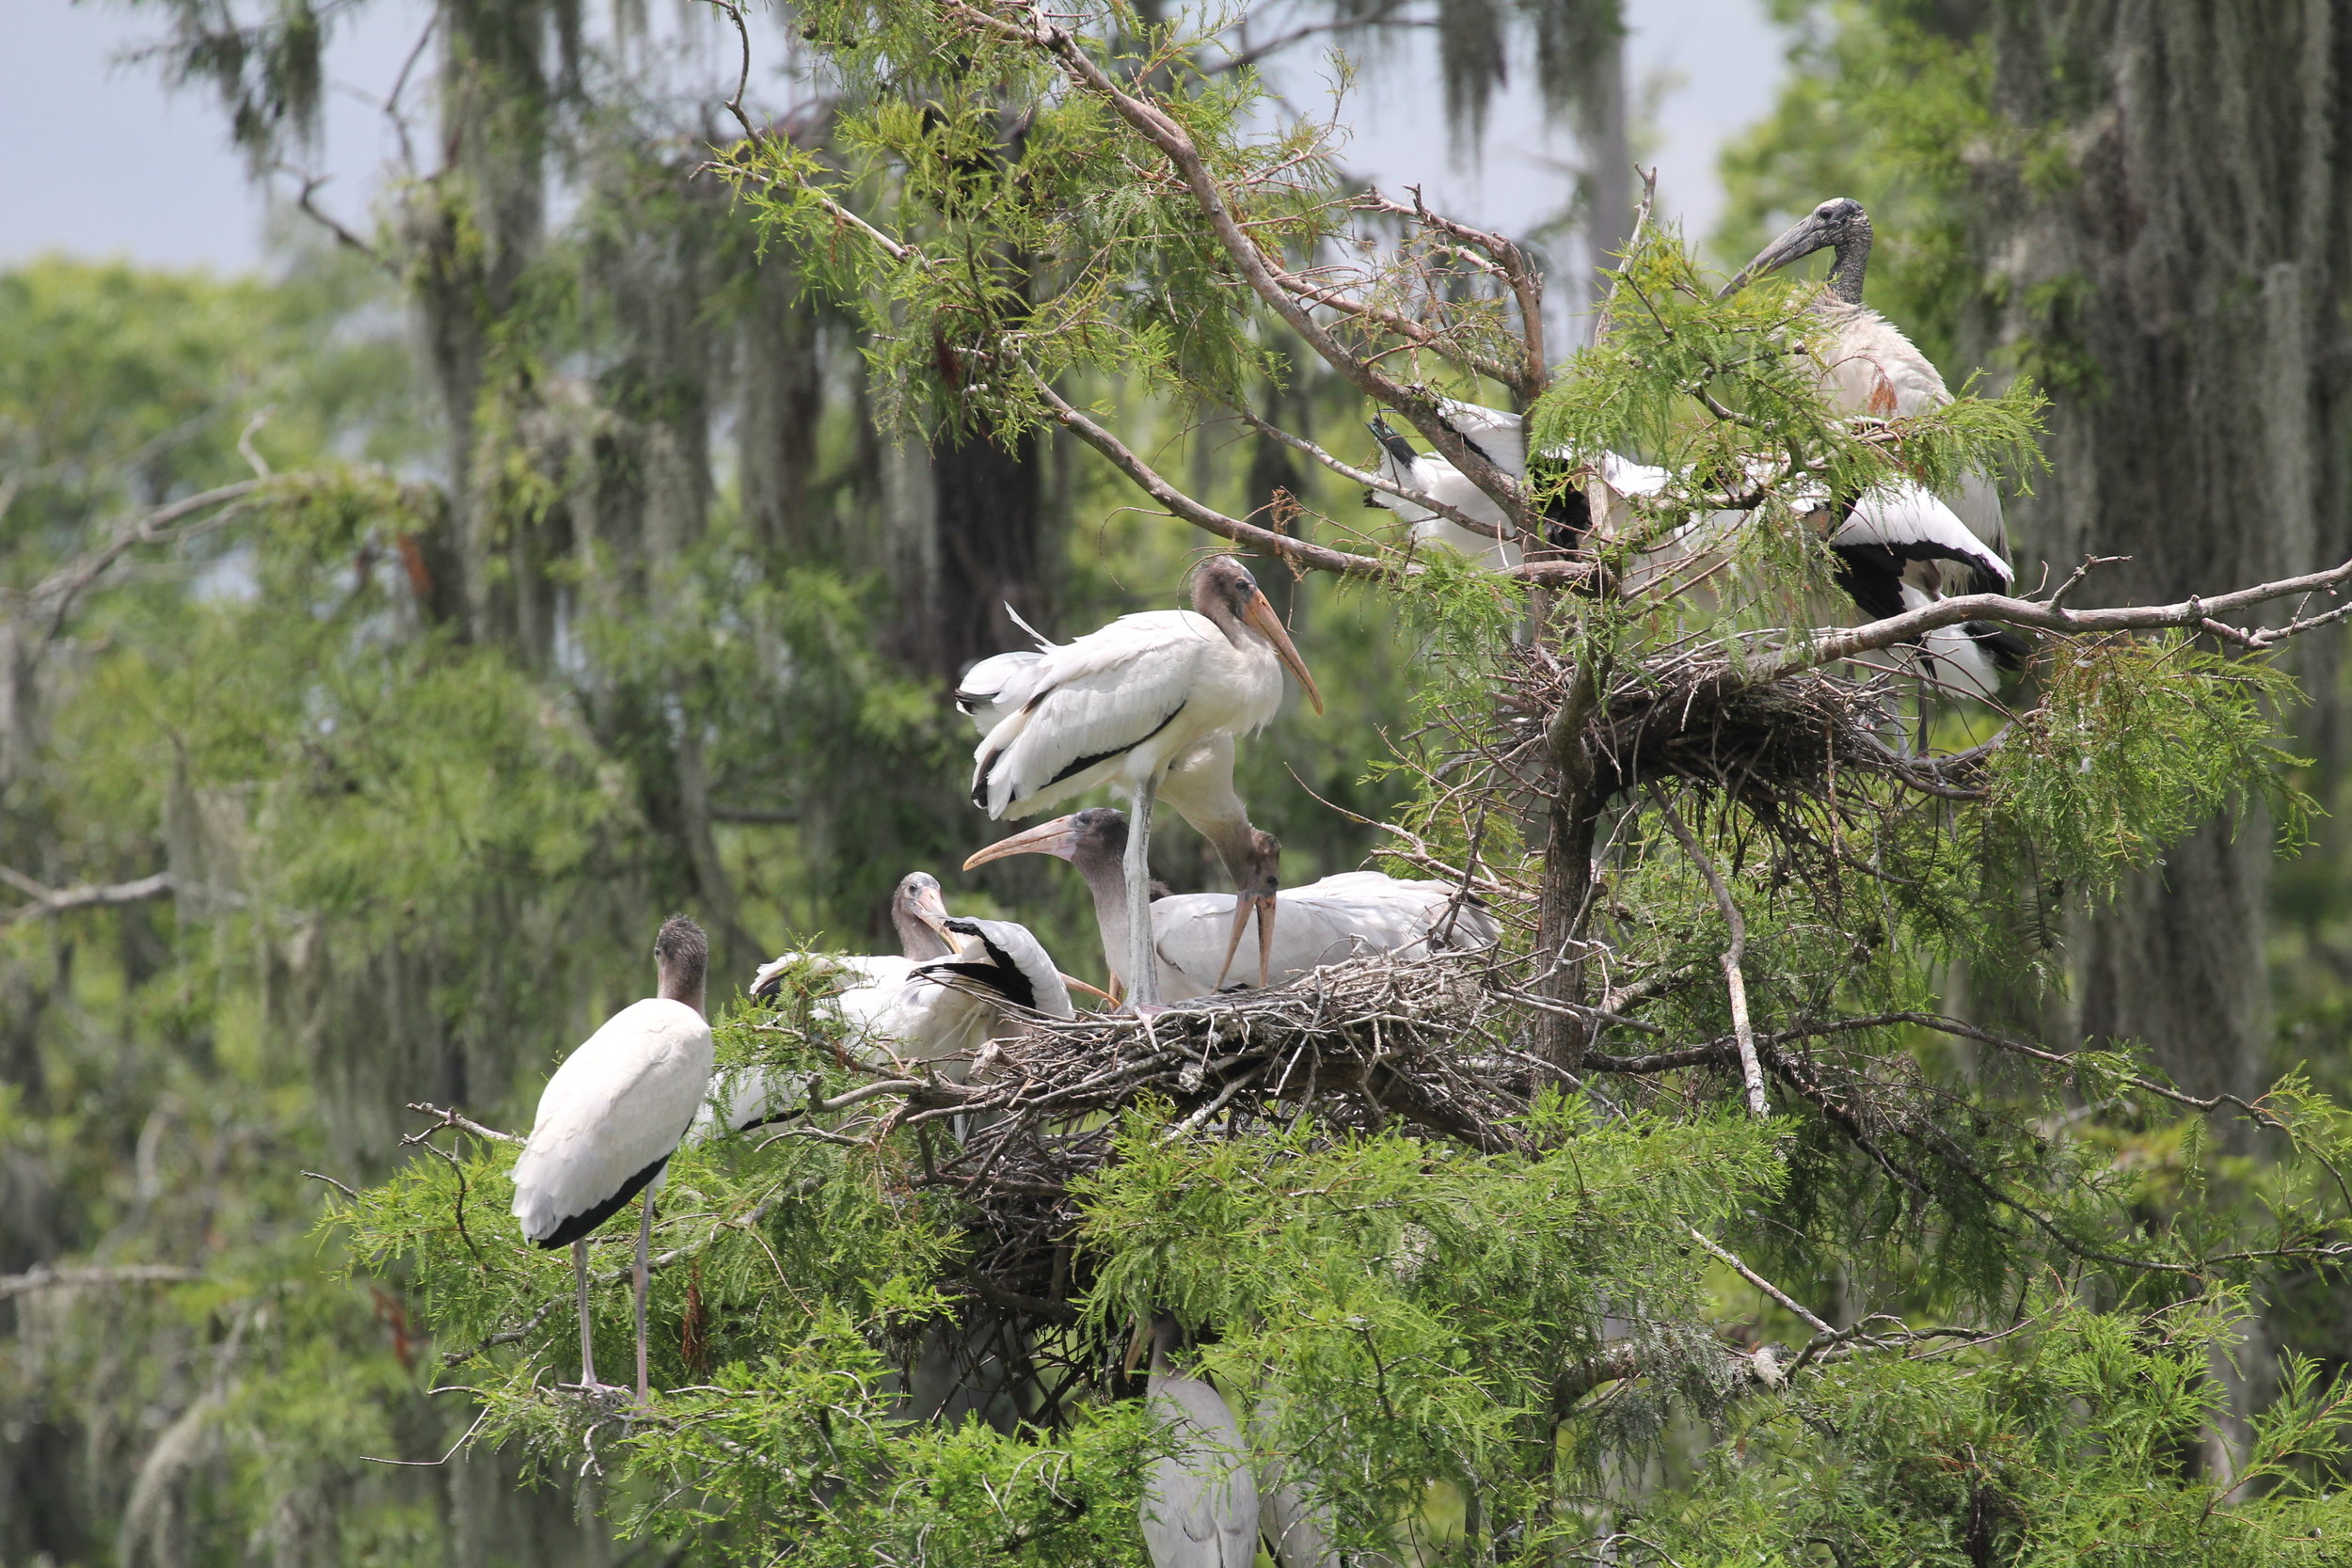 This is what wood storks look like up close, taken from a distance during a weekly visit to one of the plots where SCDNR staff monitor nesting success. Here you can see both juveniles, with the peach-colored bills and fuzzy heads, as well as a bald, black-headed adult at right. (Photo: Christy Hand)